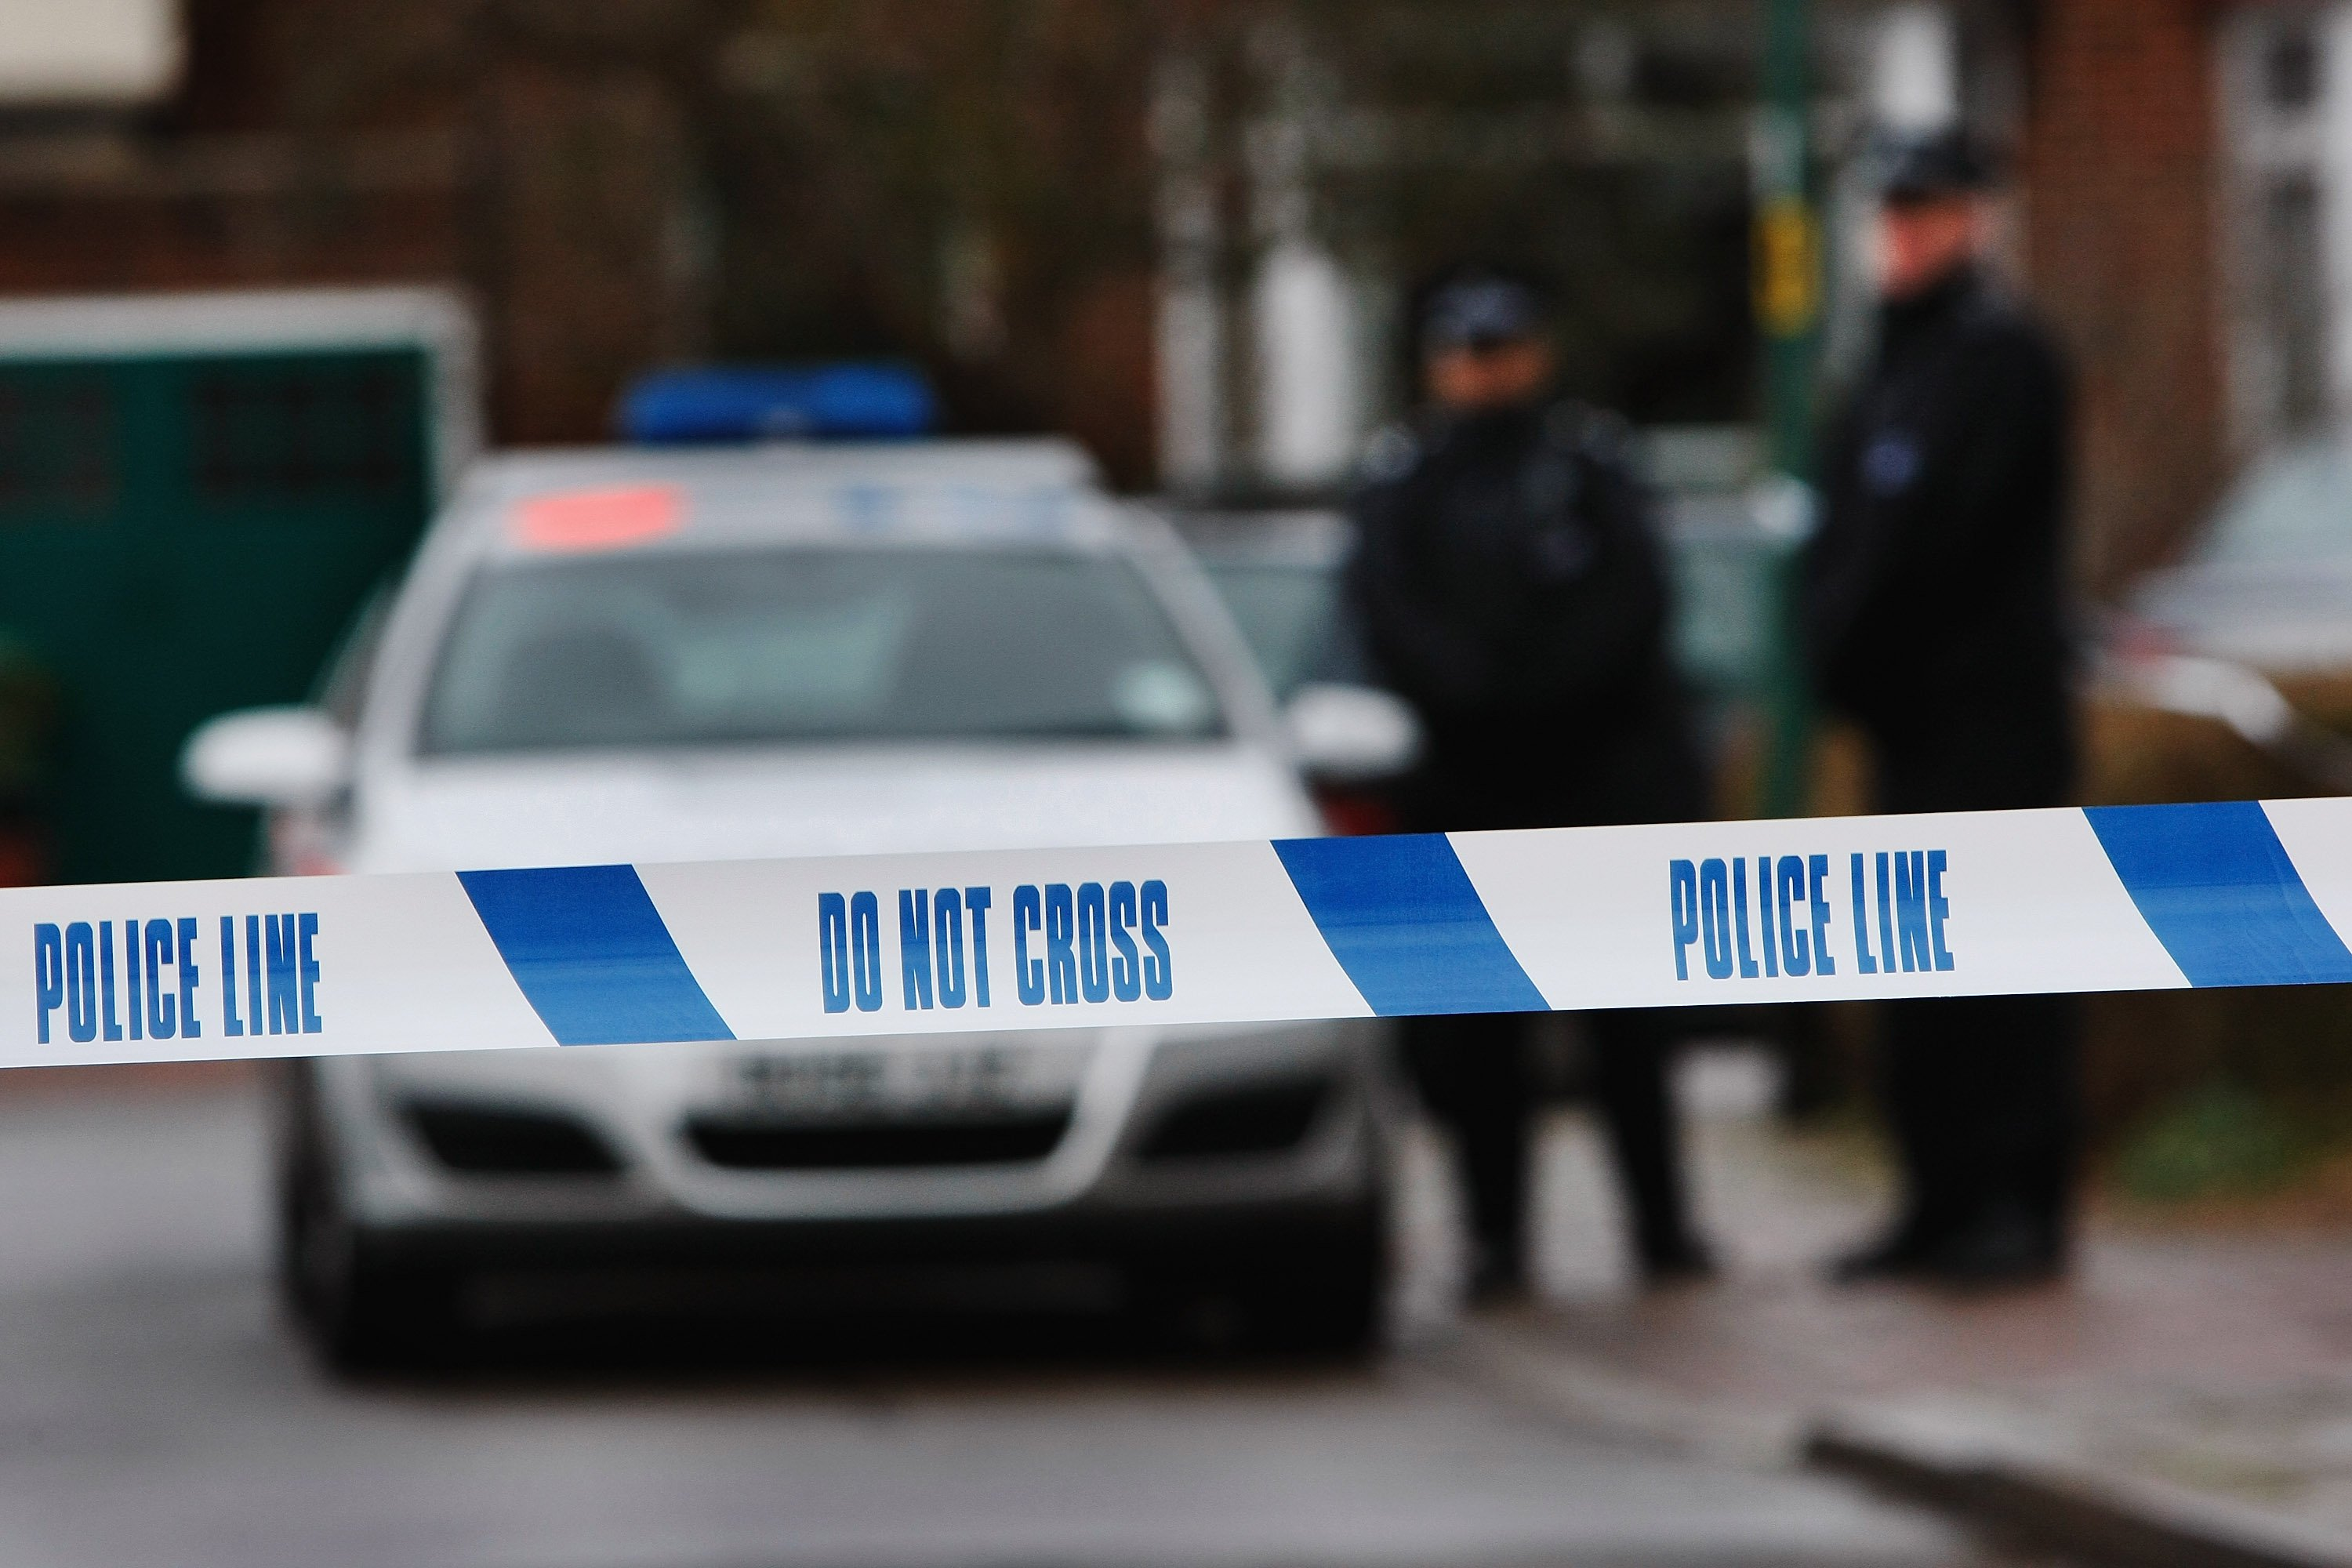 Police tape is pictured as police officers stand guard outside of a house in Edgeware on December 27, 2007 in London, England   Source: Photo: Getty Images